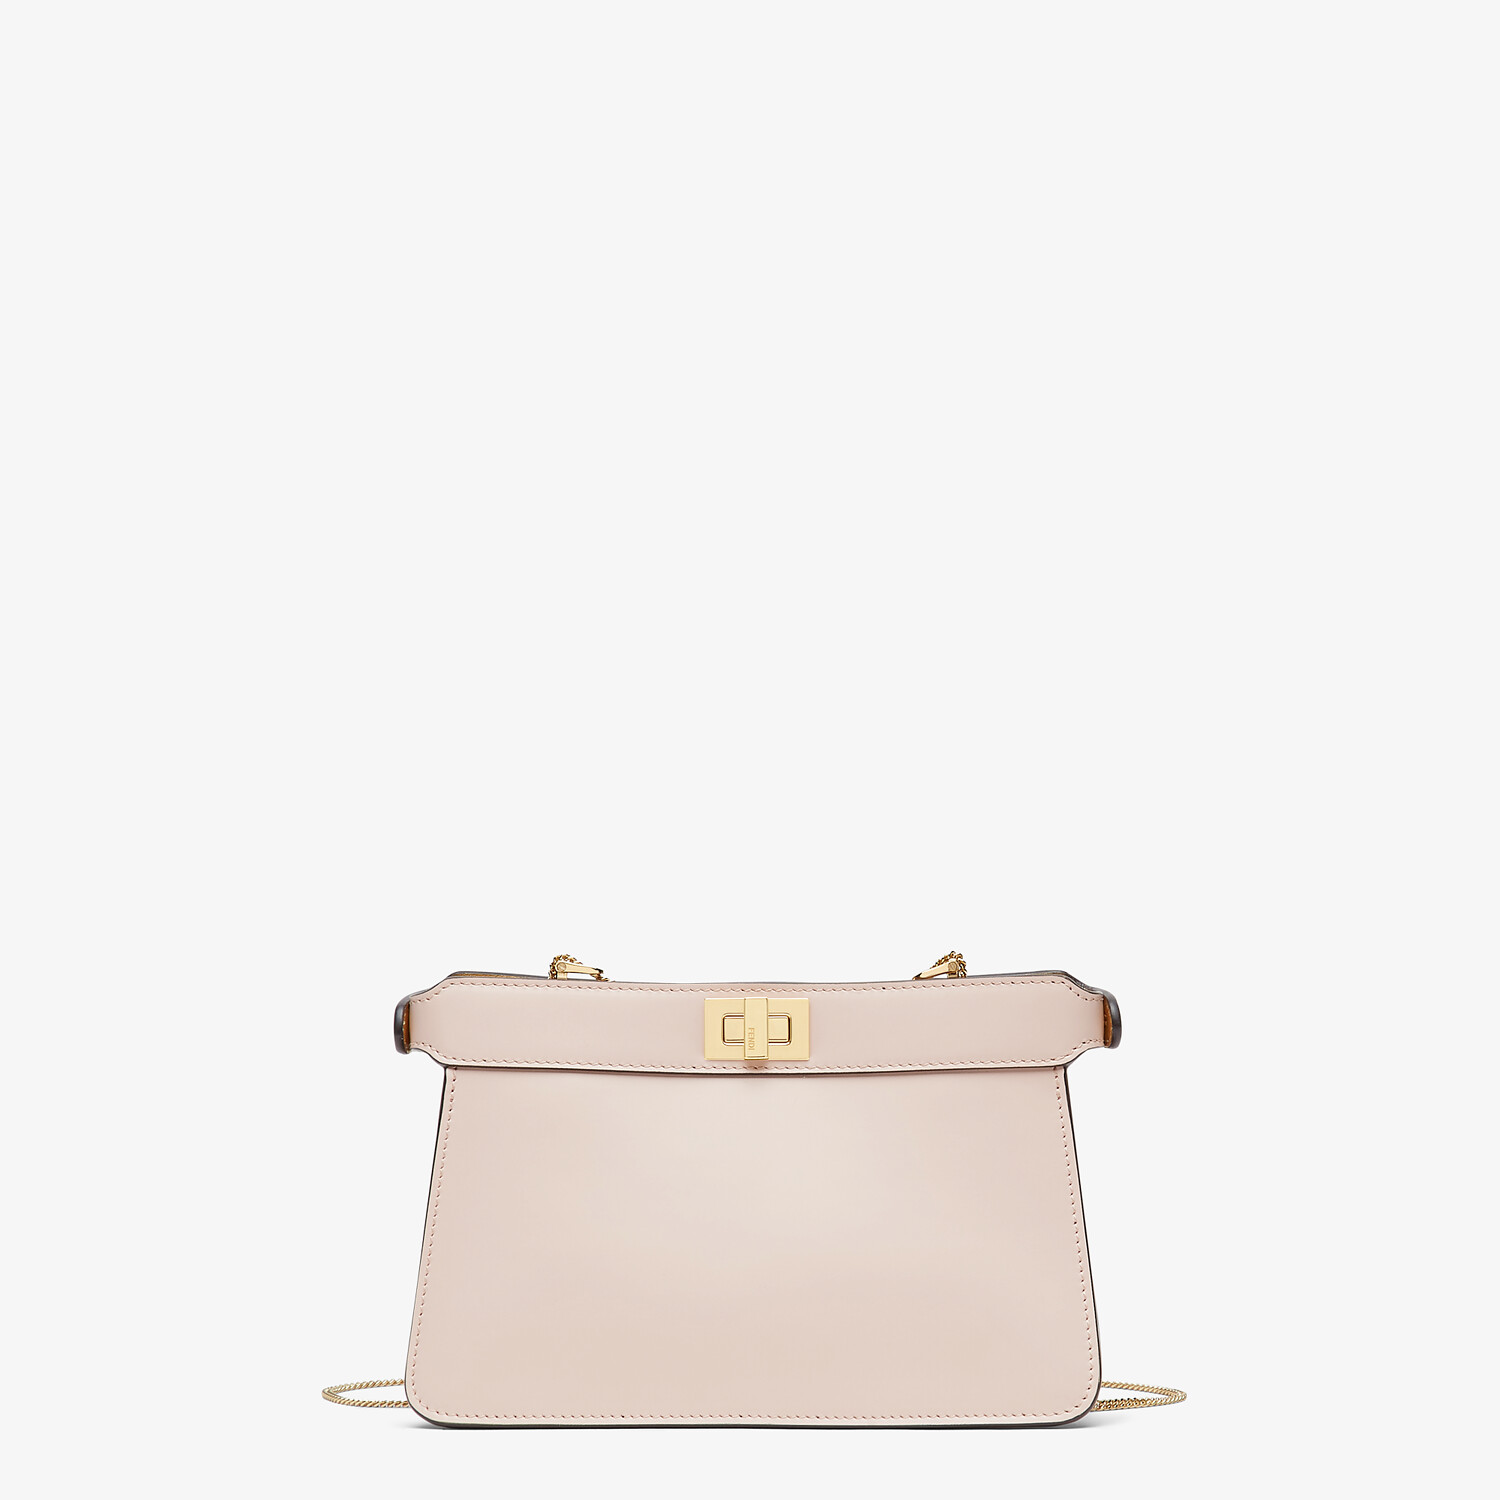 FENDI PEEKABOO I SEE U POCHETTE - Pink leather bag with fringes - view 4 detail